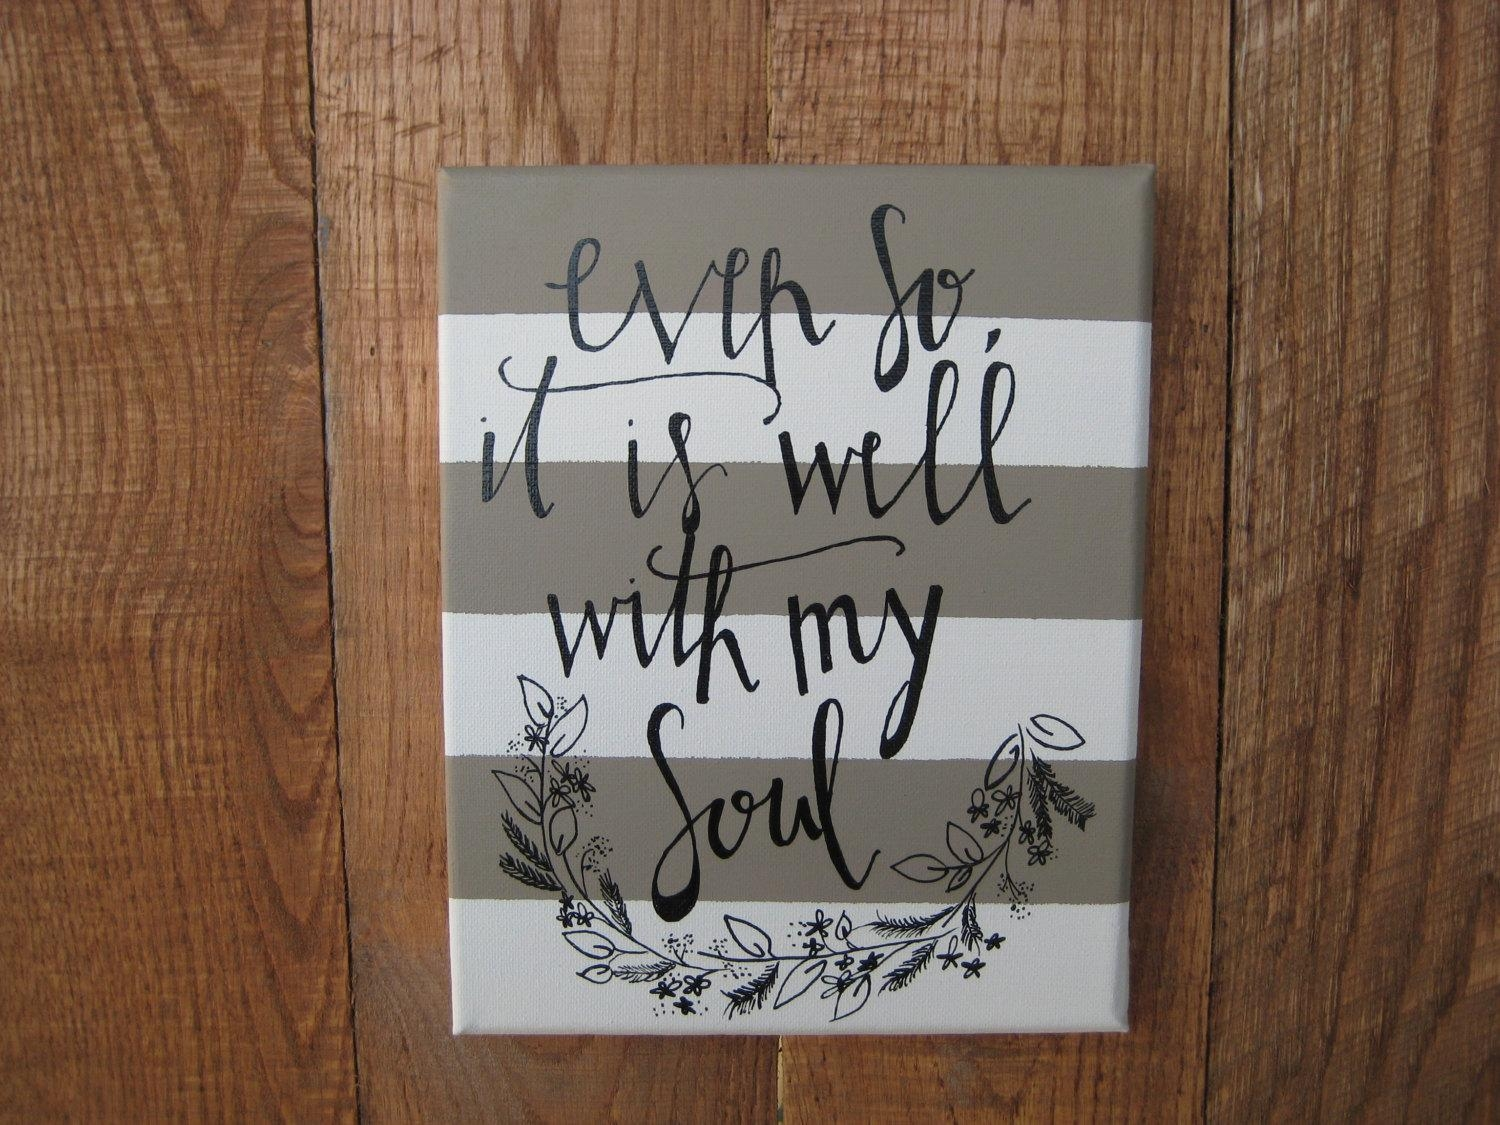 Wall Art Designs: Christian Canvas Wall Art On Your Home And With Regard To Christian Wall Art Canvas (Image 13 of 20)